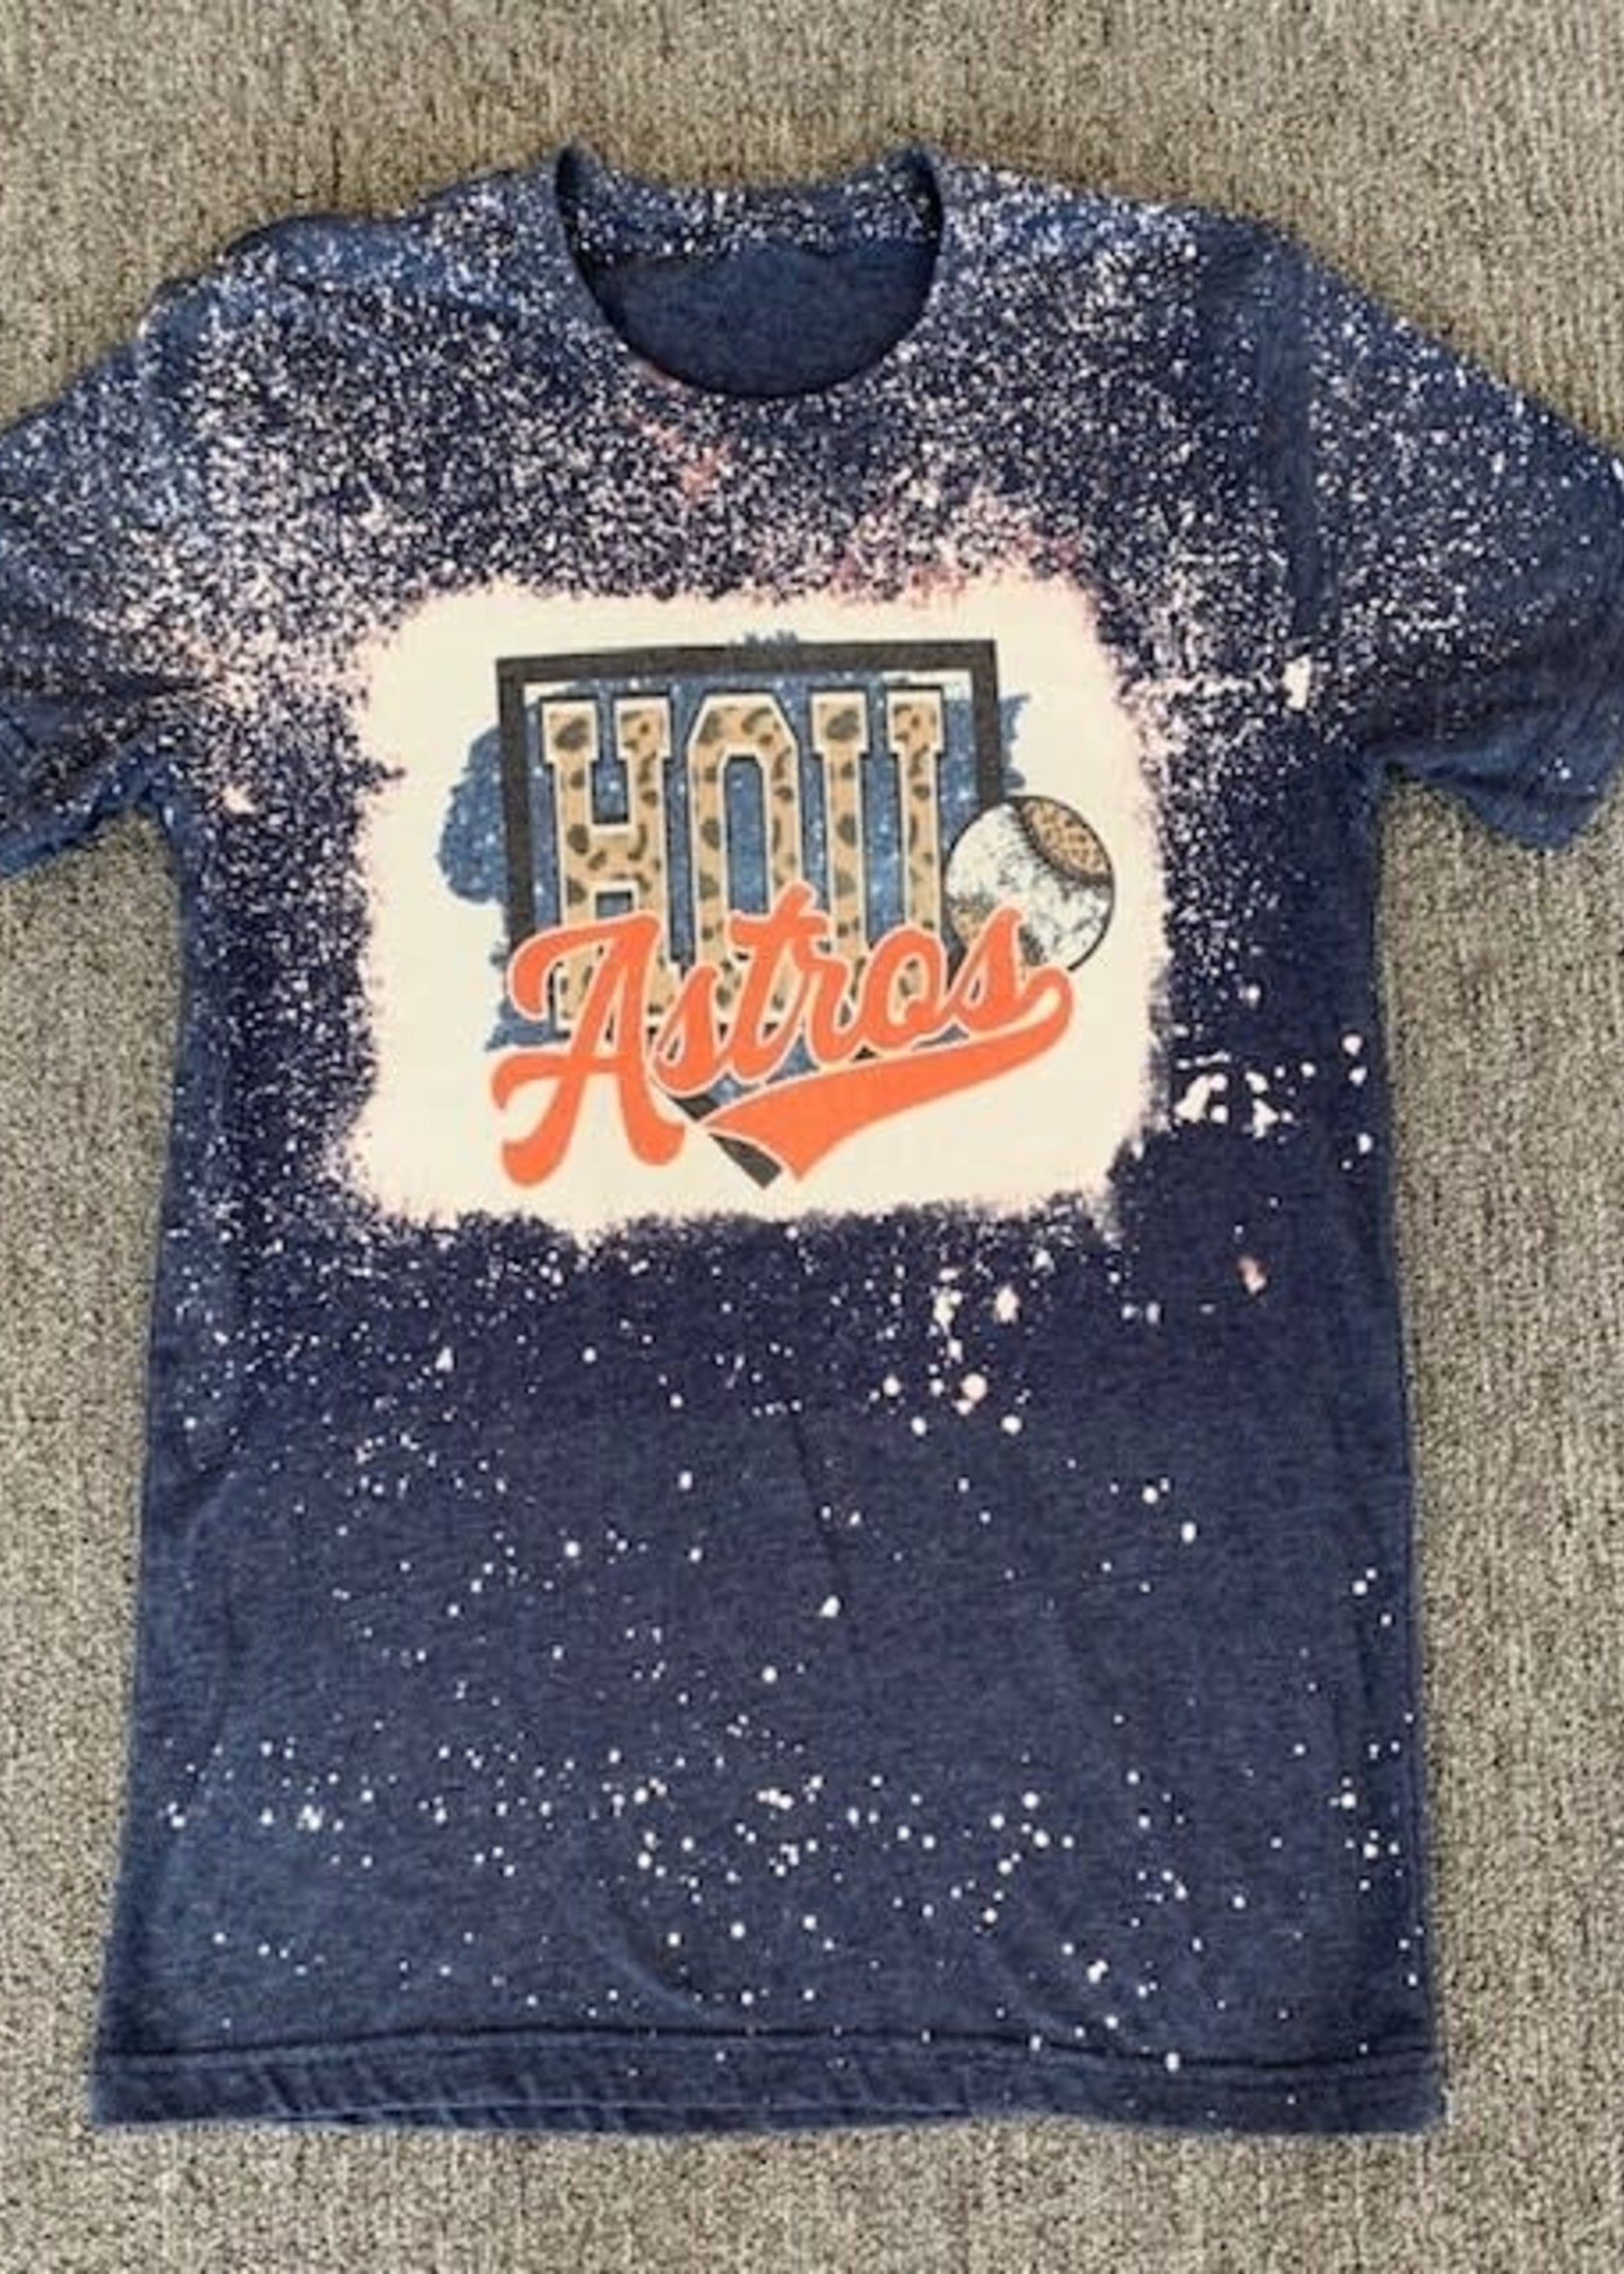 Empty Nest Creations Bleached Astros Shirt